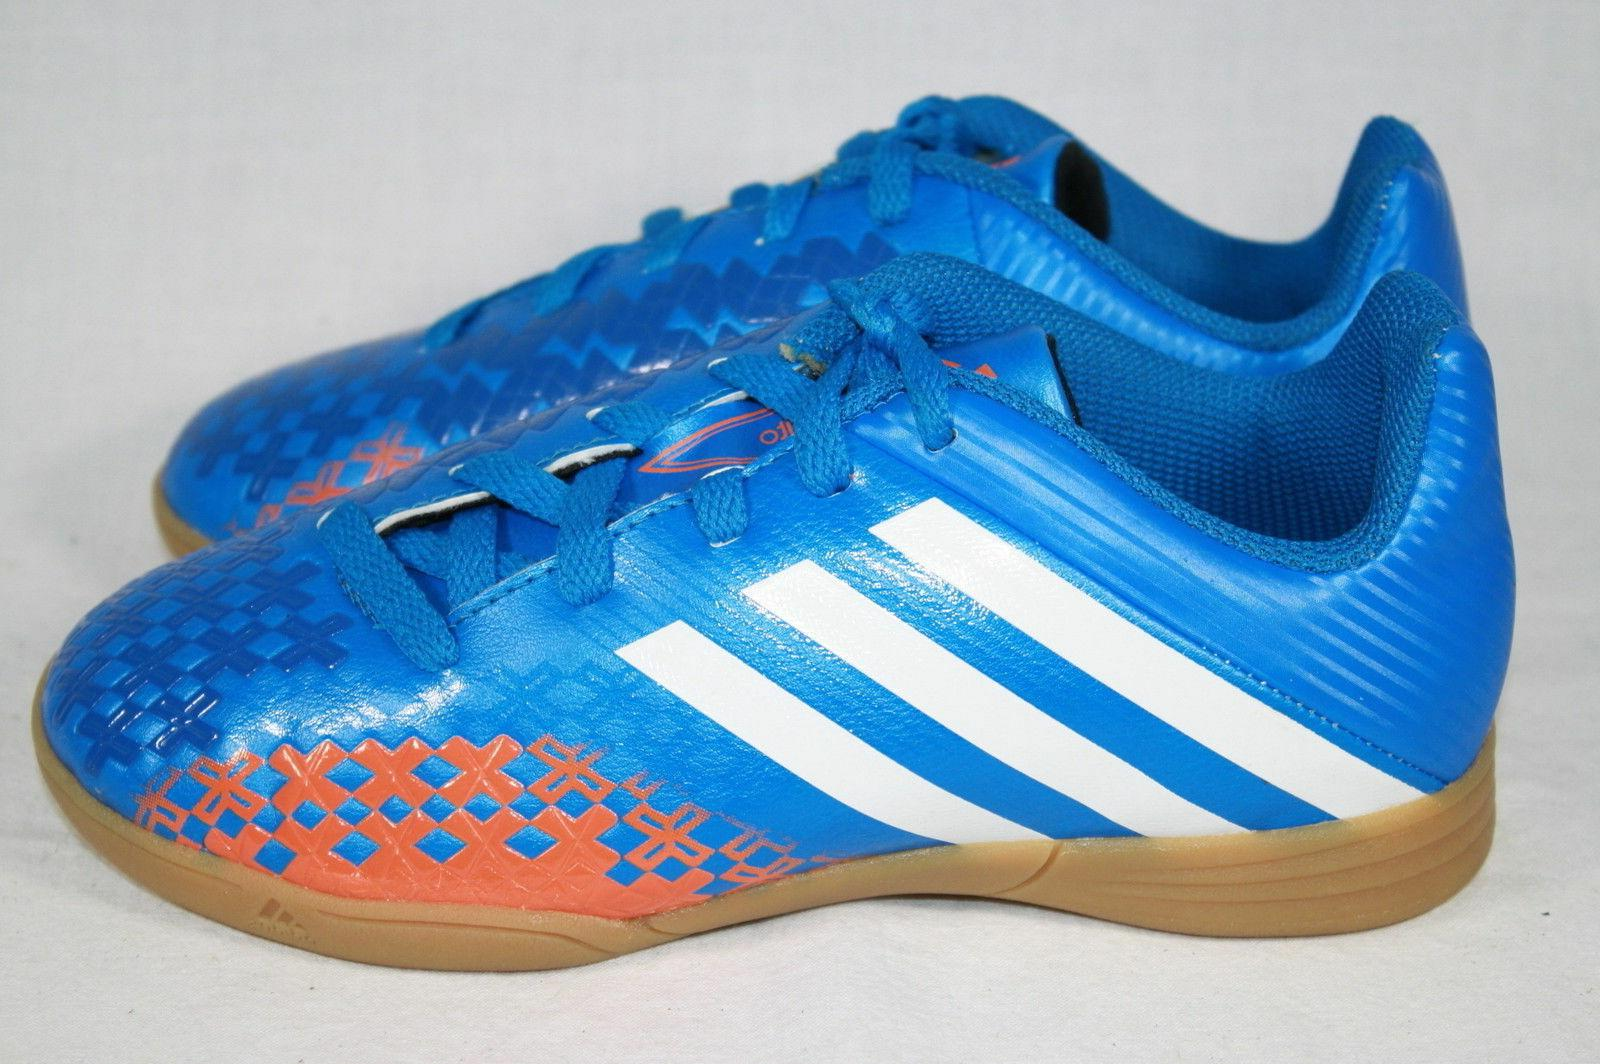 BOYS YOUTH ADIDAS PREDITO BLUE/ORANGE SHOES - SEE LISTING FO